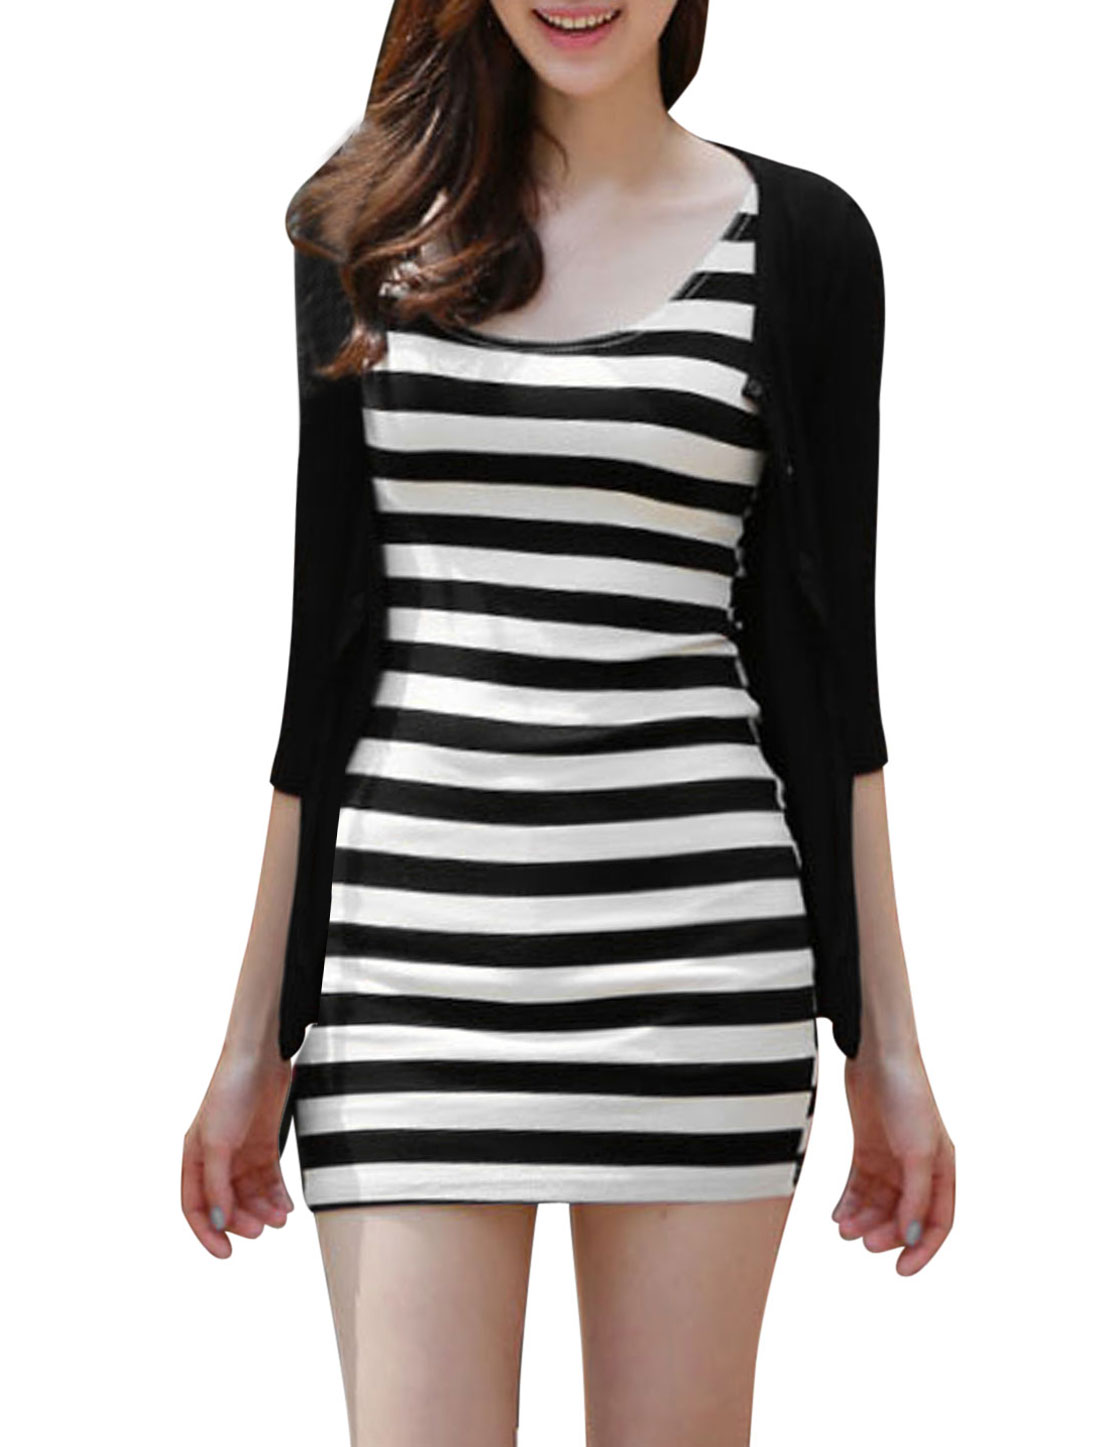 Ladies Black Round Neck 3/4 Sleeves Single Breasted Top w Stripes Dress M